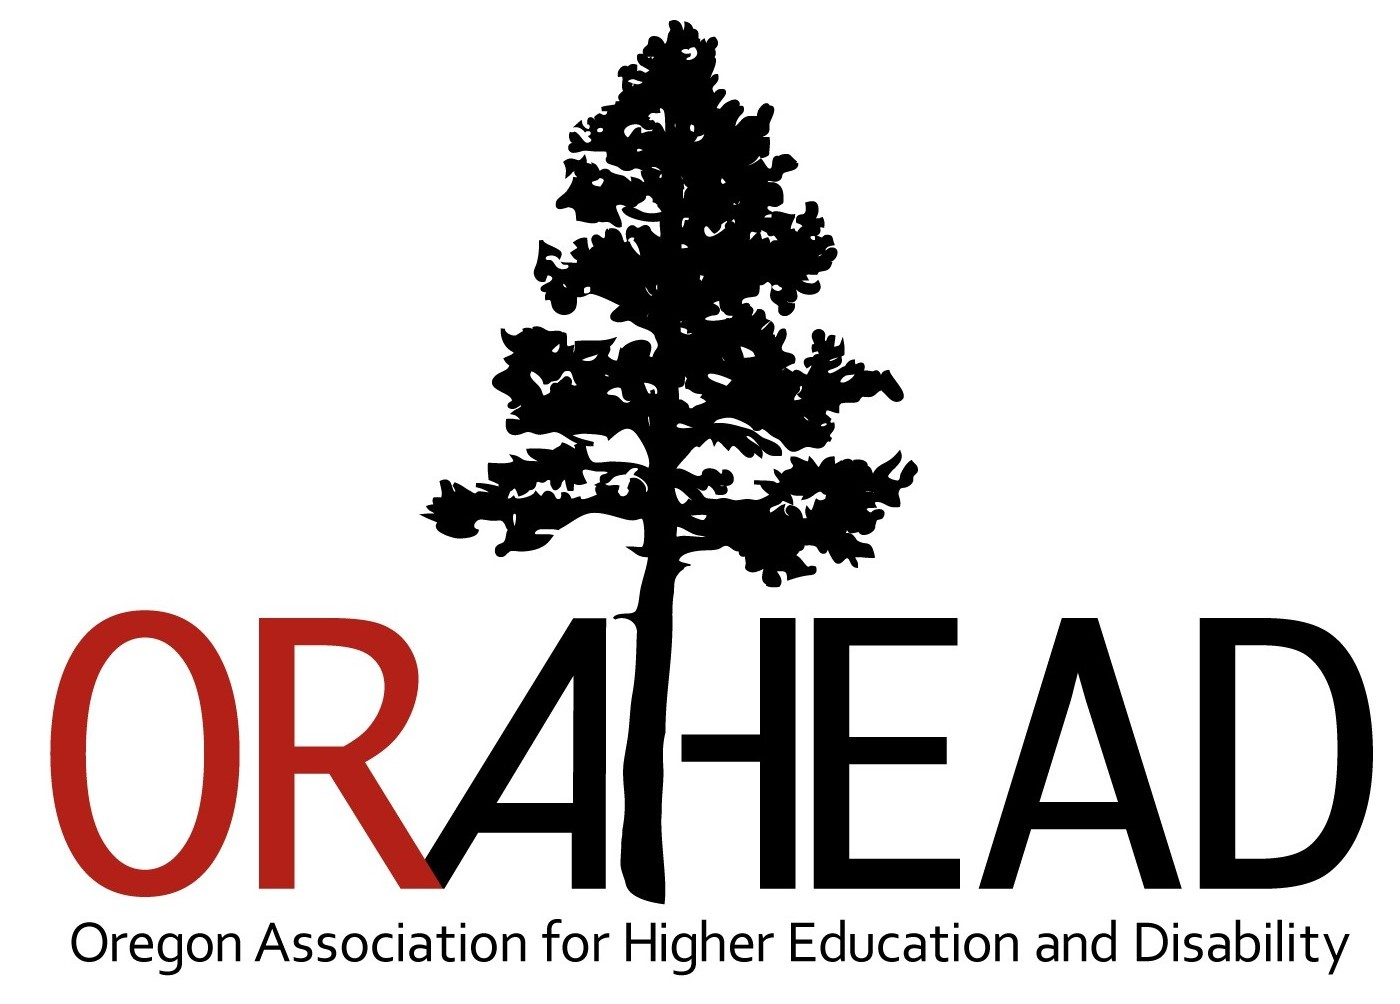 ORAHEAD Logo, Featuring a Pine Tree and the Full Name of the Organization, Oregon Association for Higher Education and Disability